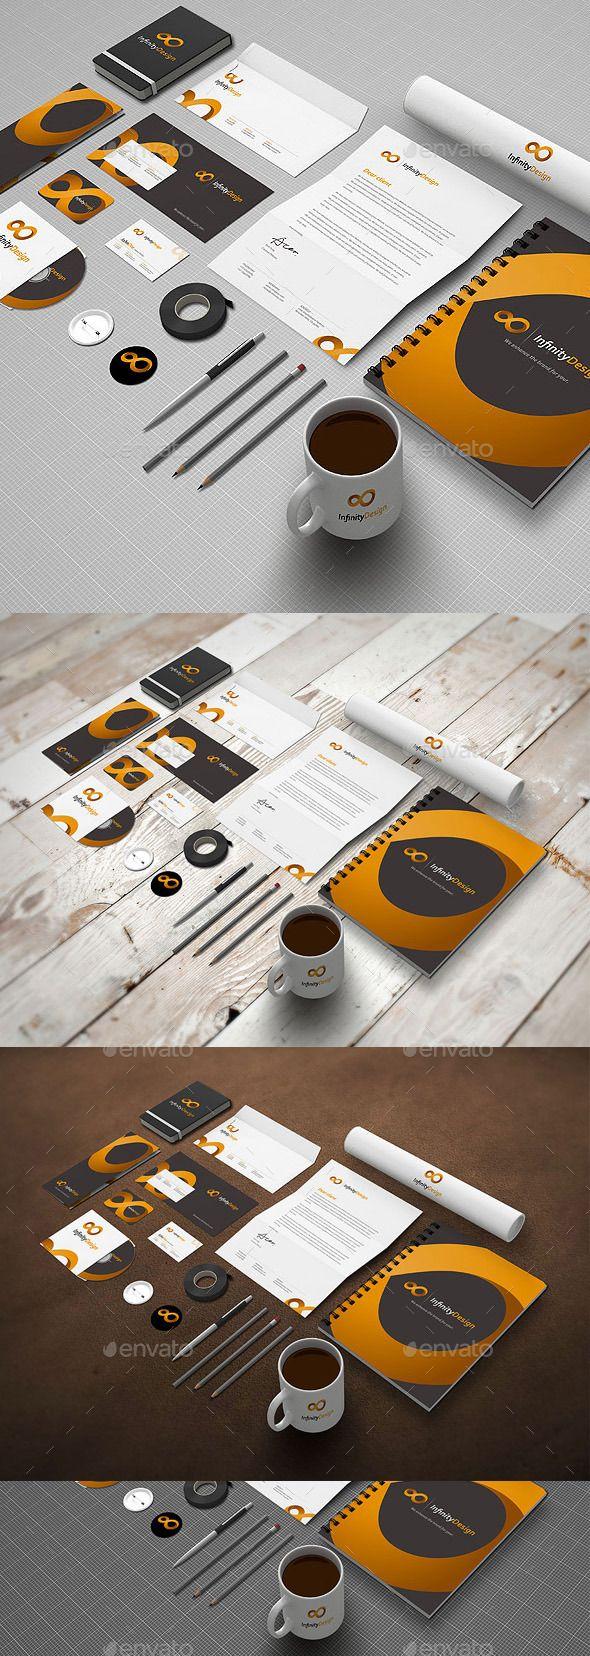 Photo Realistic Stationery Mock-Up #design Download: http://graphicriver.net/item/photo-realistic-stationery-mockup/12693295?ref=ksioks